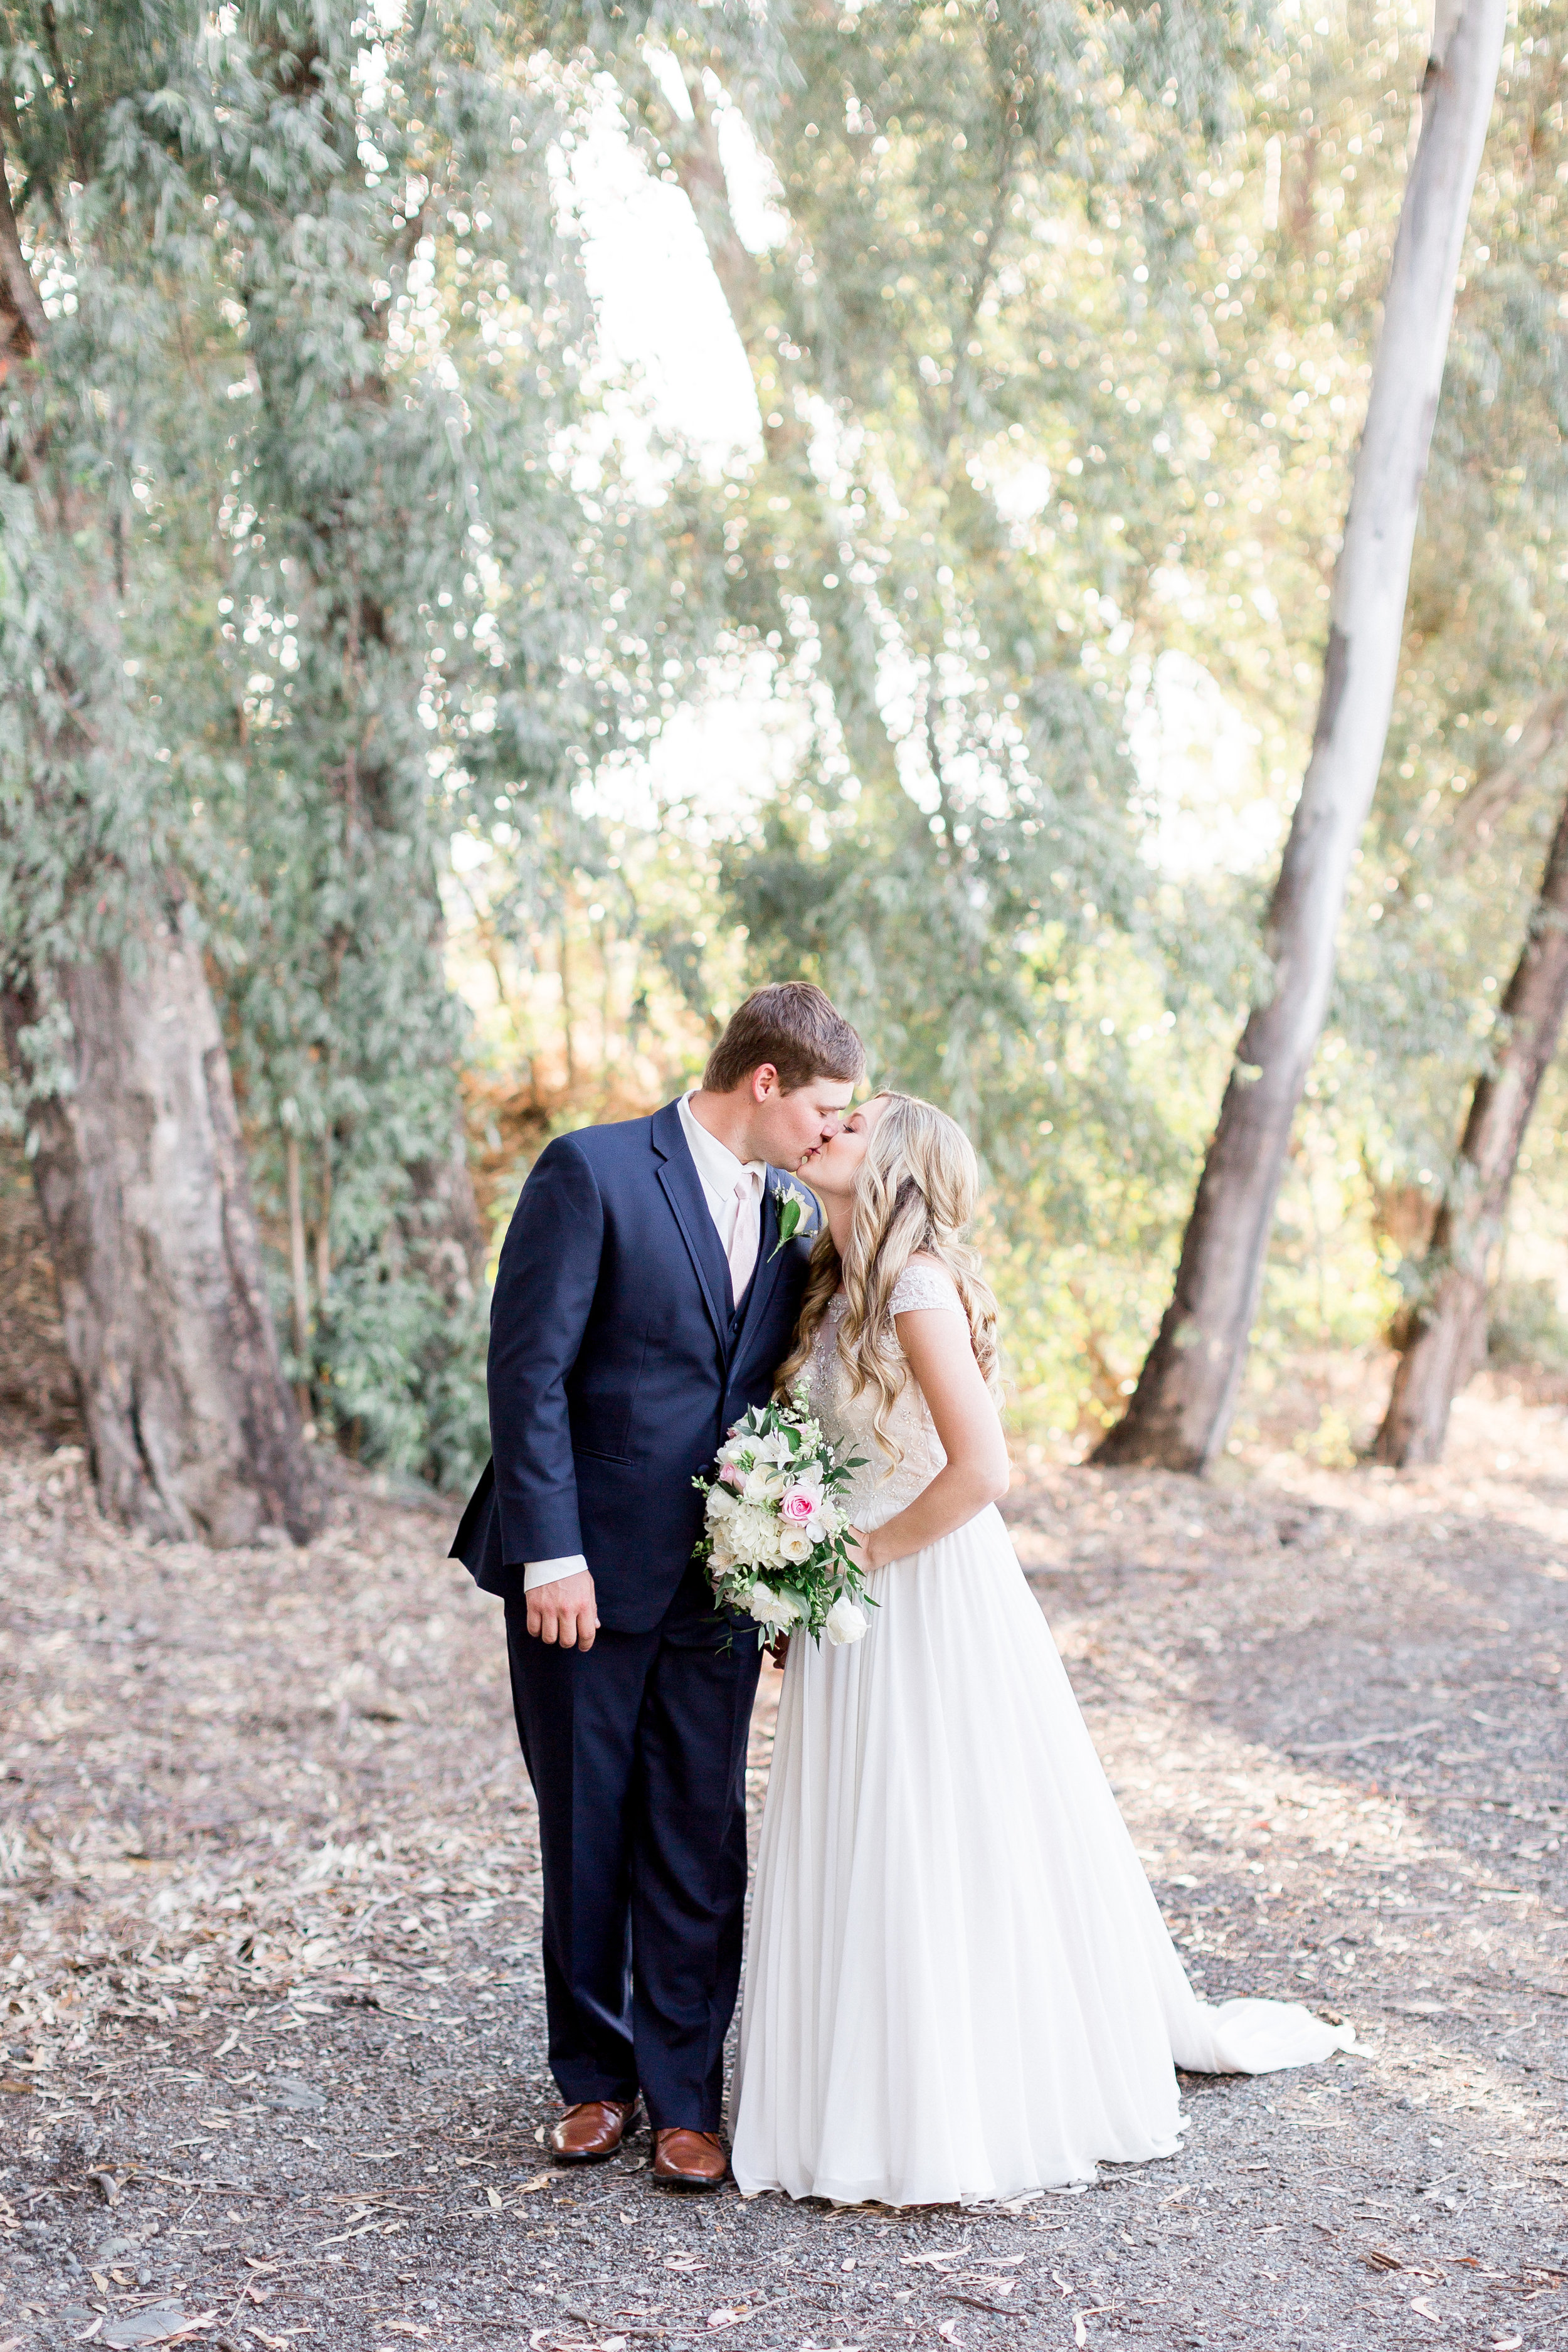 A-Private-Ranch-Northern-California-Wedding (185 of 229).jpg